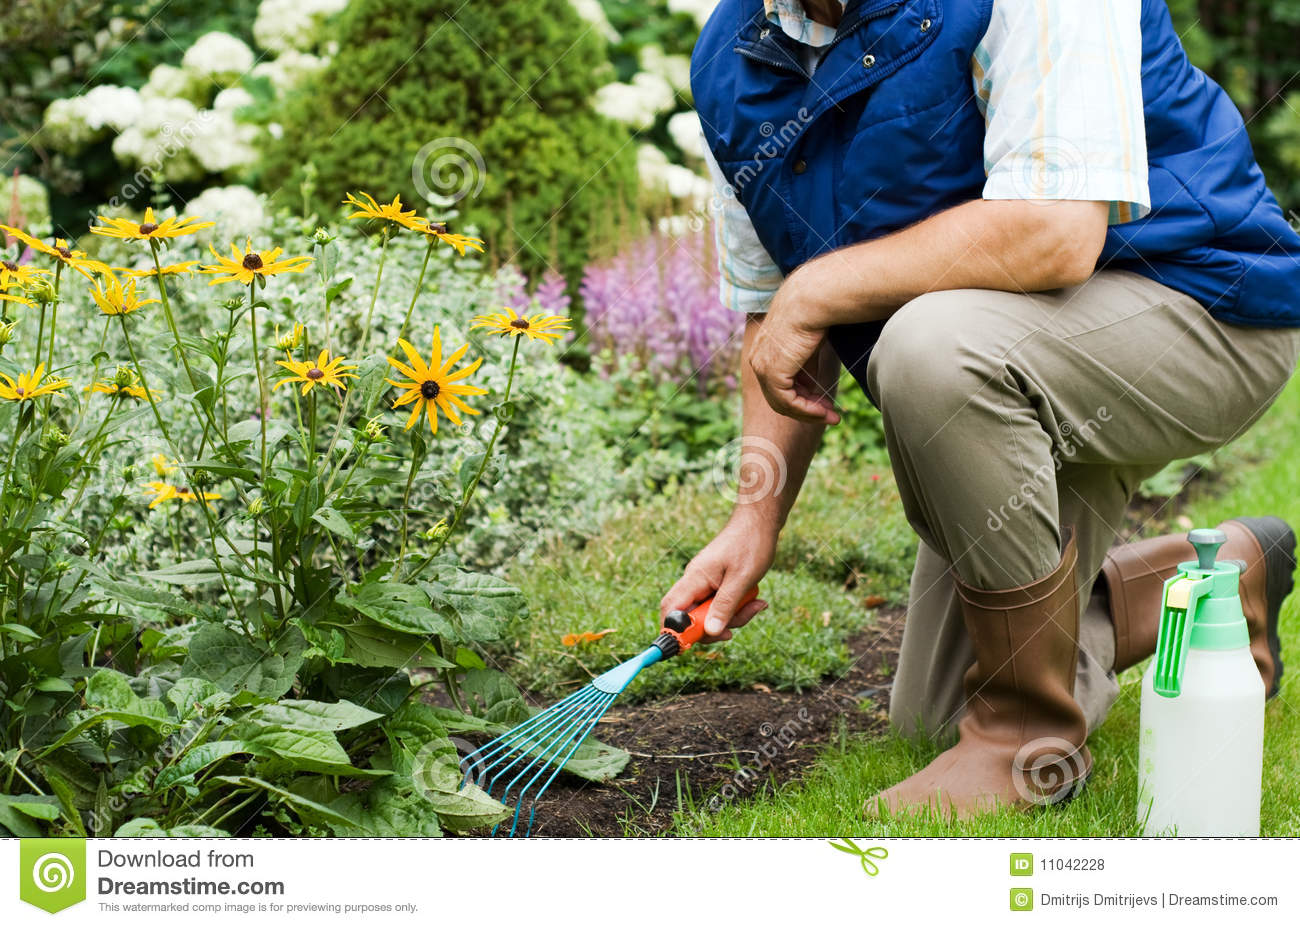 Gardener working in the garden.